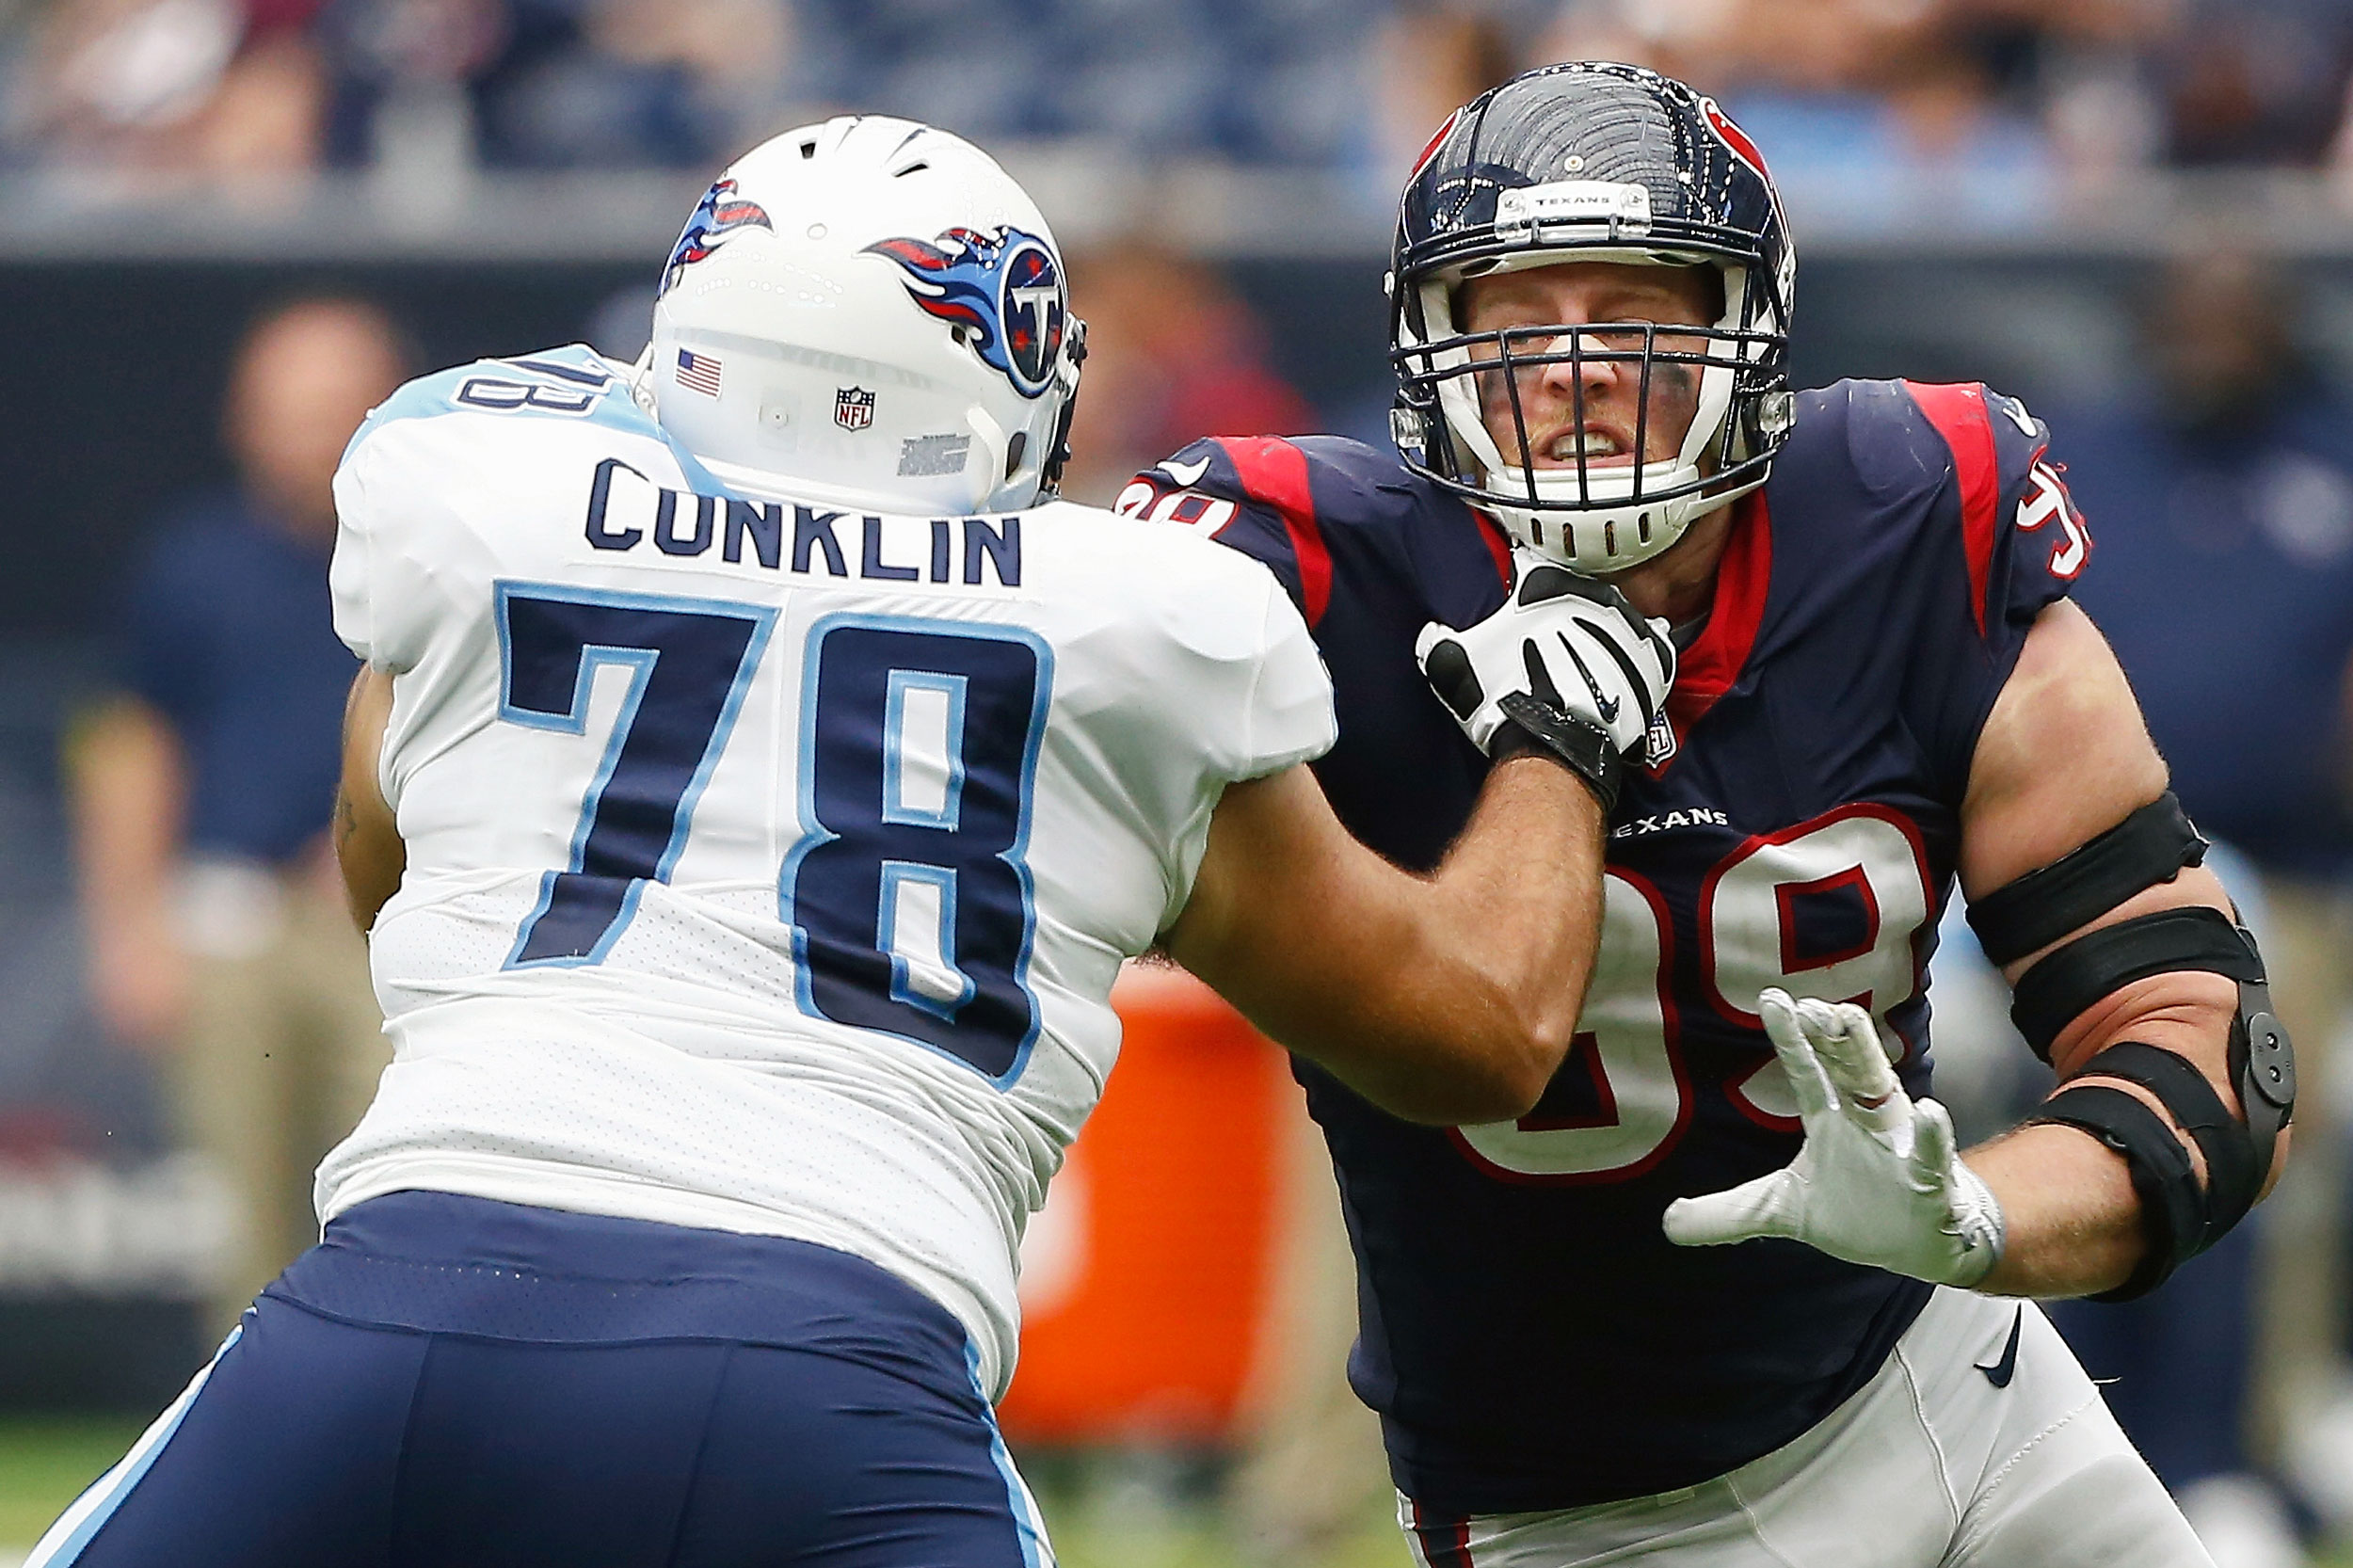 Jack Conklin and J.J. Watt